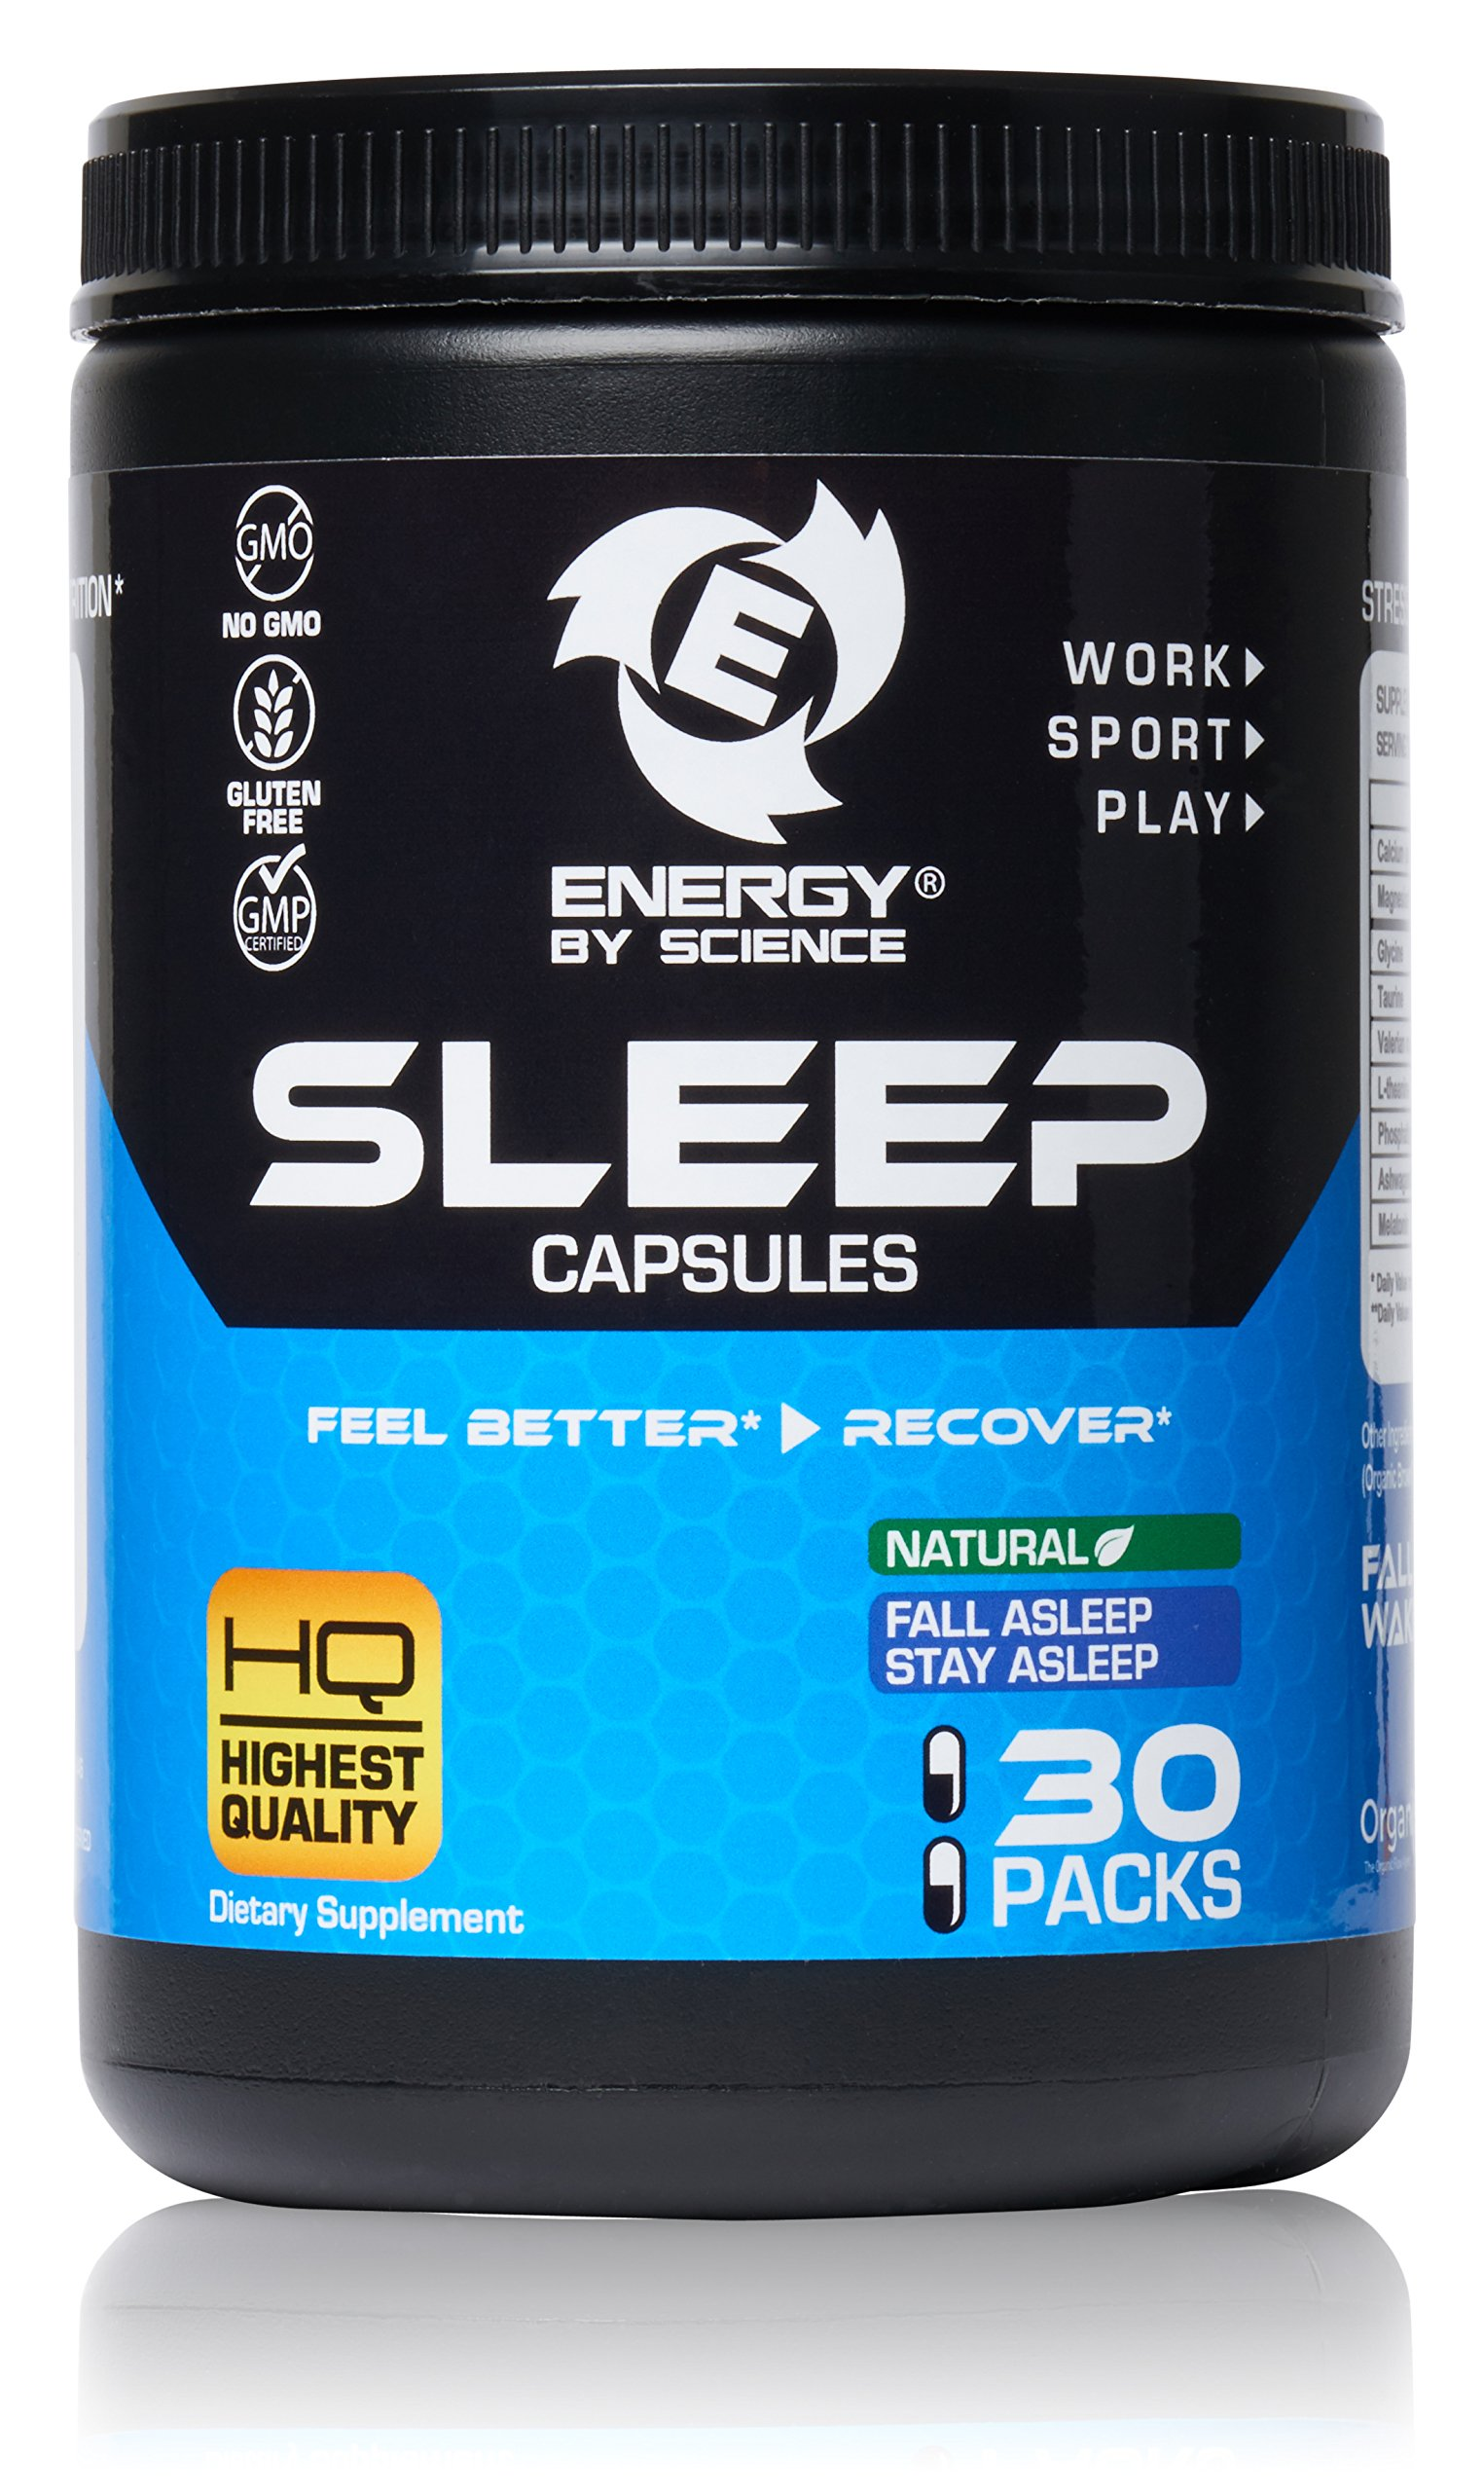 Best Natural Sleeping Aid Sleep Boosting Pills Extra Strength Capsules Supplement - Rest and Recover